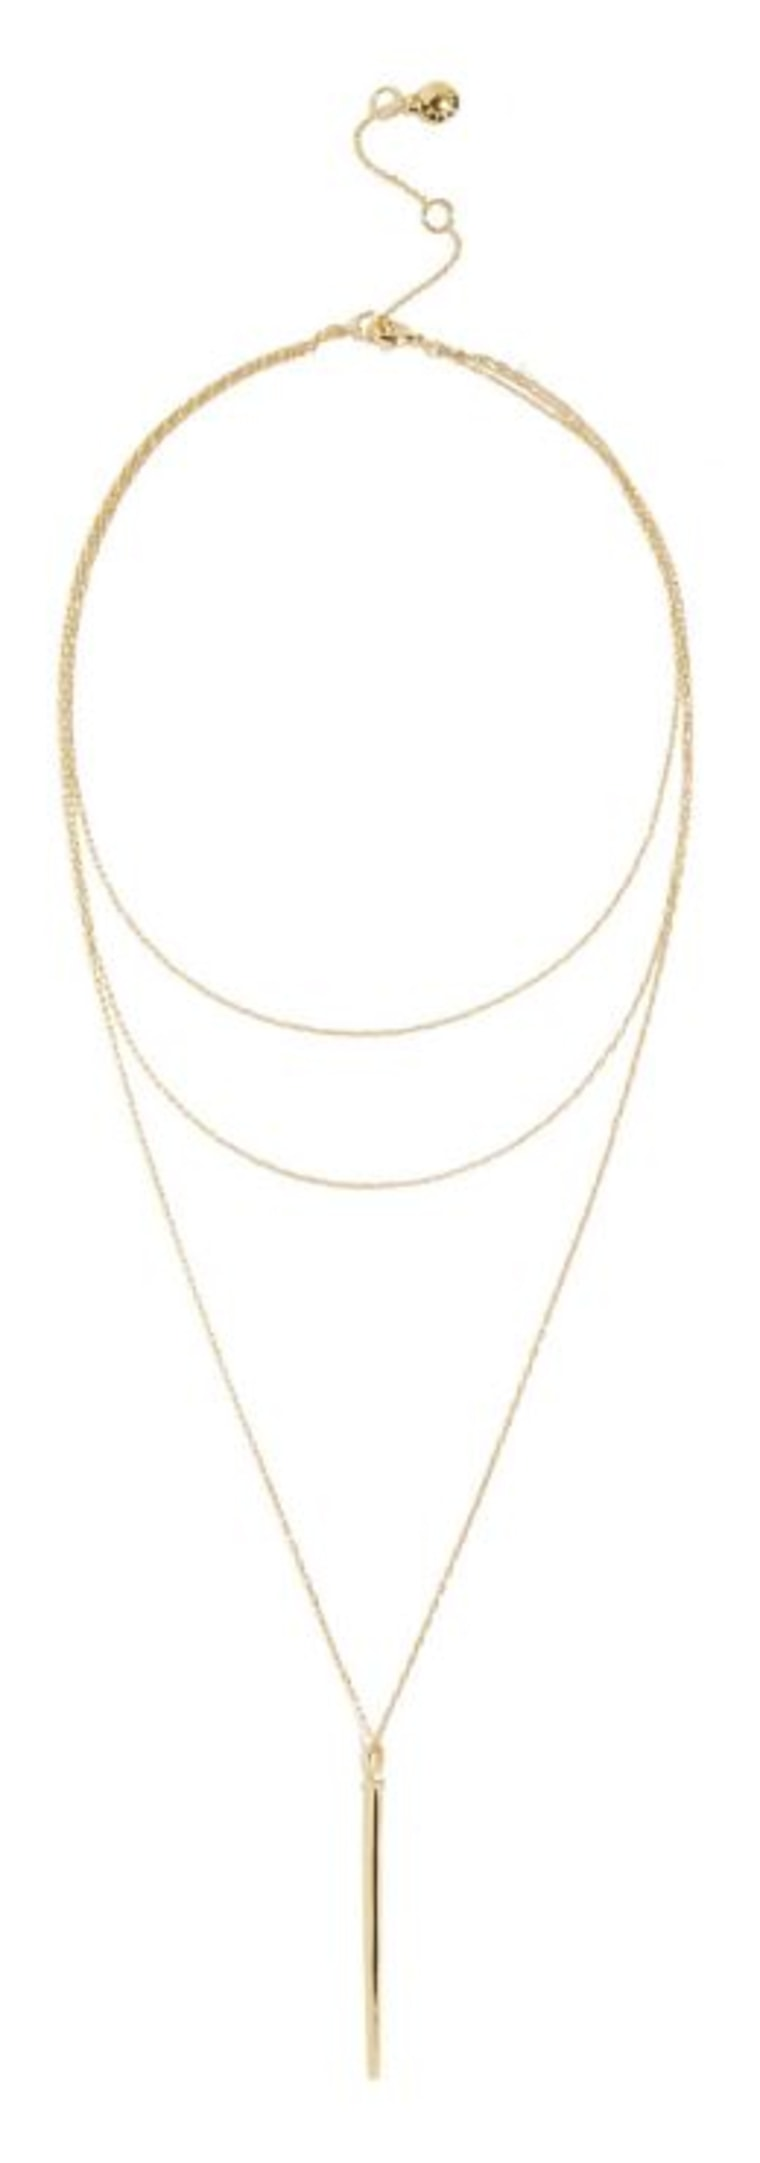 Mira Layered Necklace